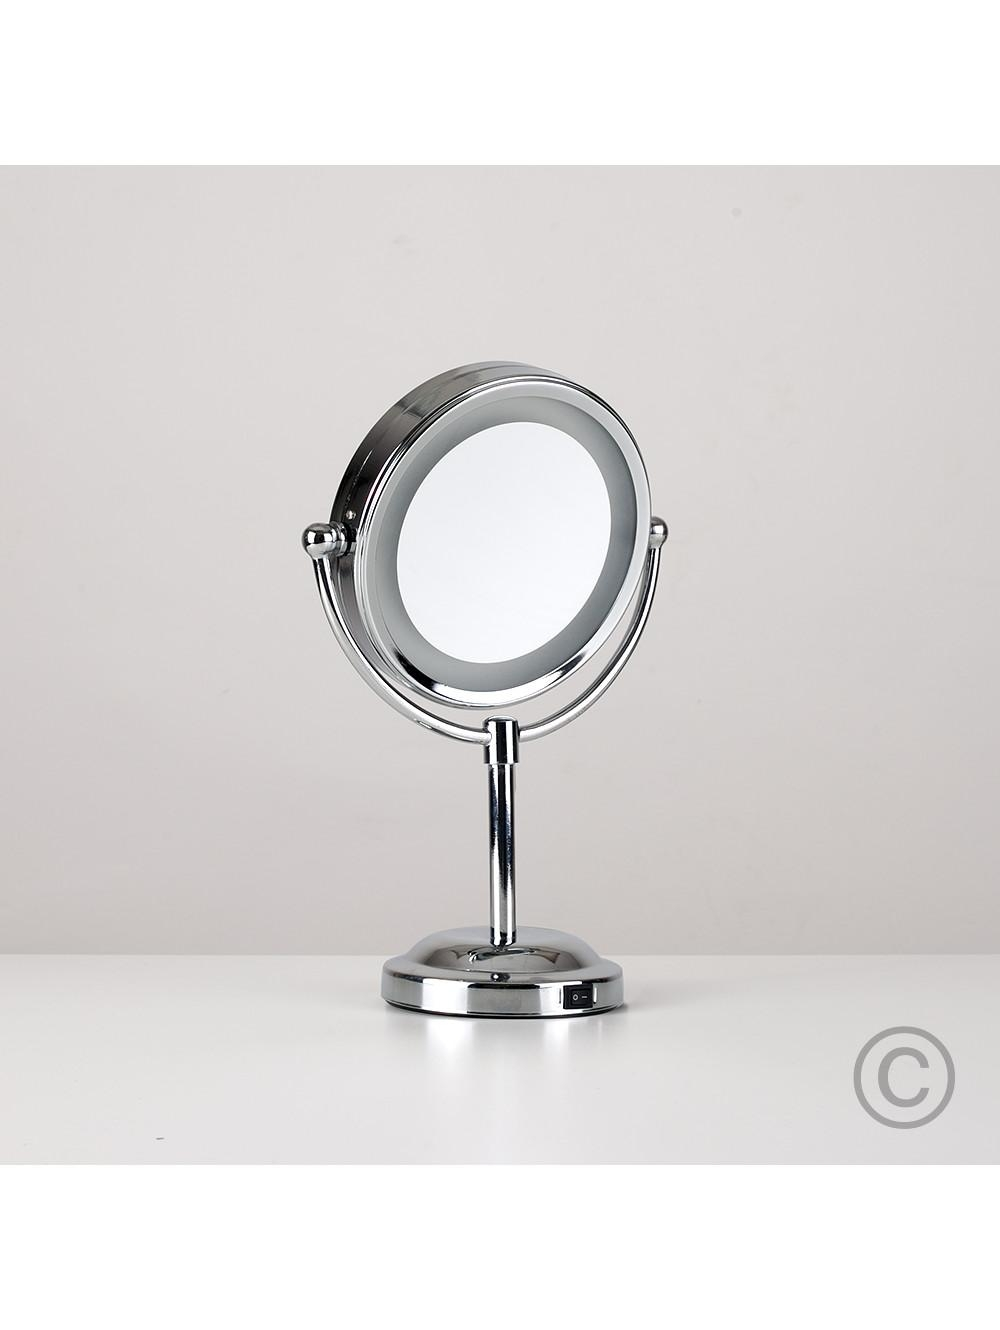 Small Round Light Up Free Standing Mirror | Valuelights Within Small Free Standing Mirror (Image 17 of 20)